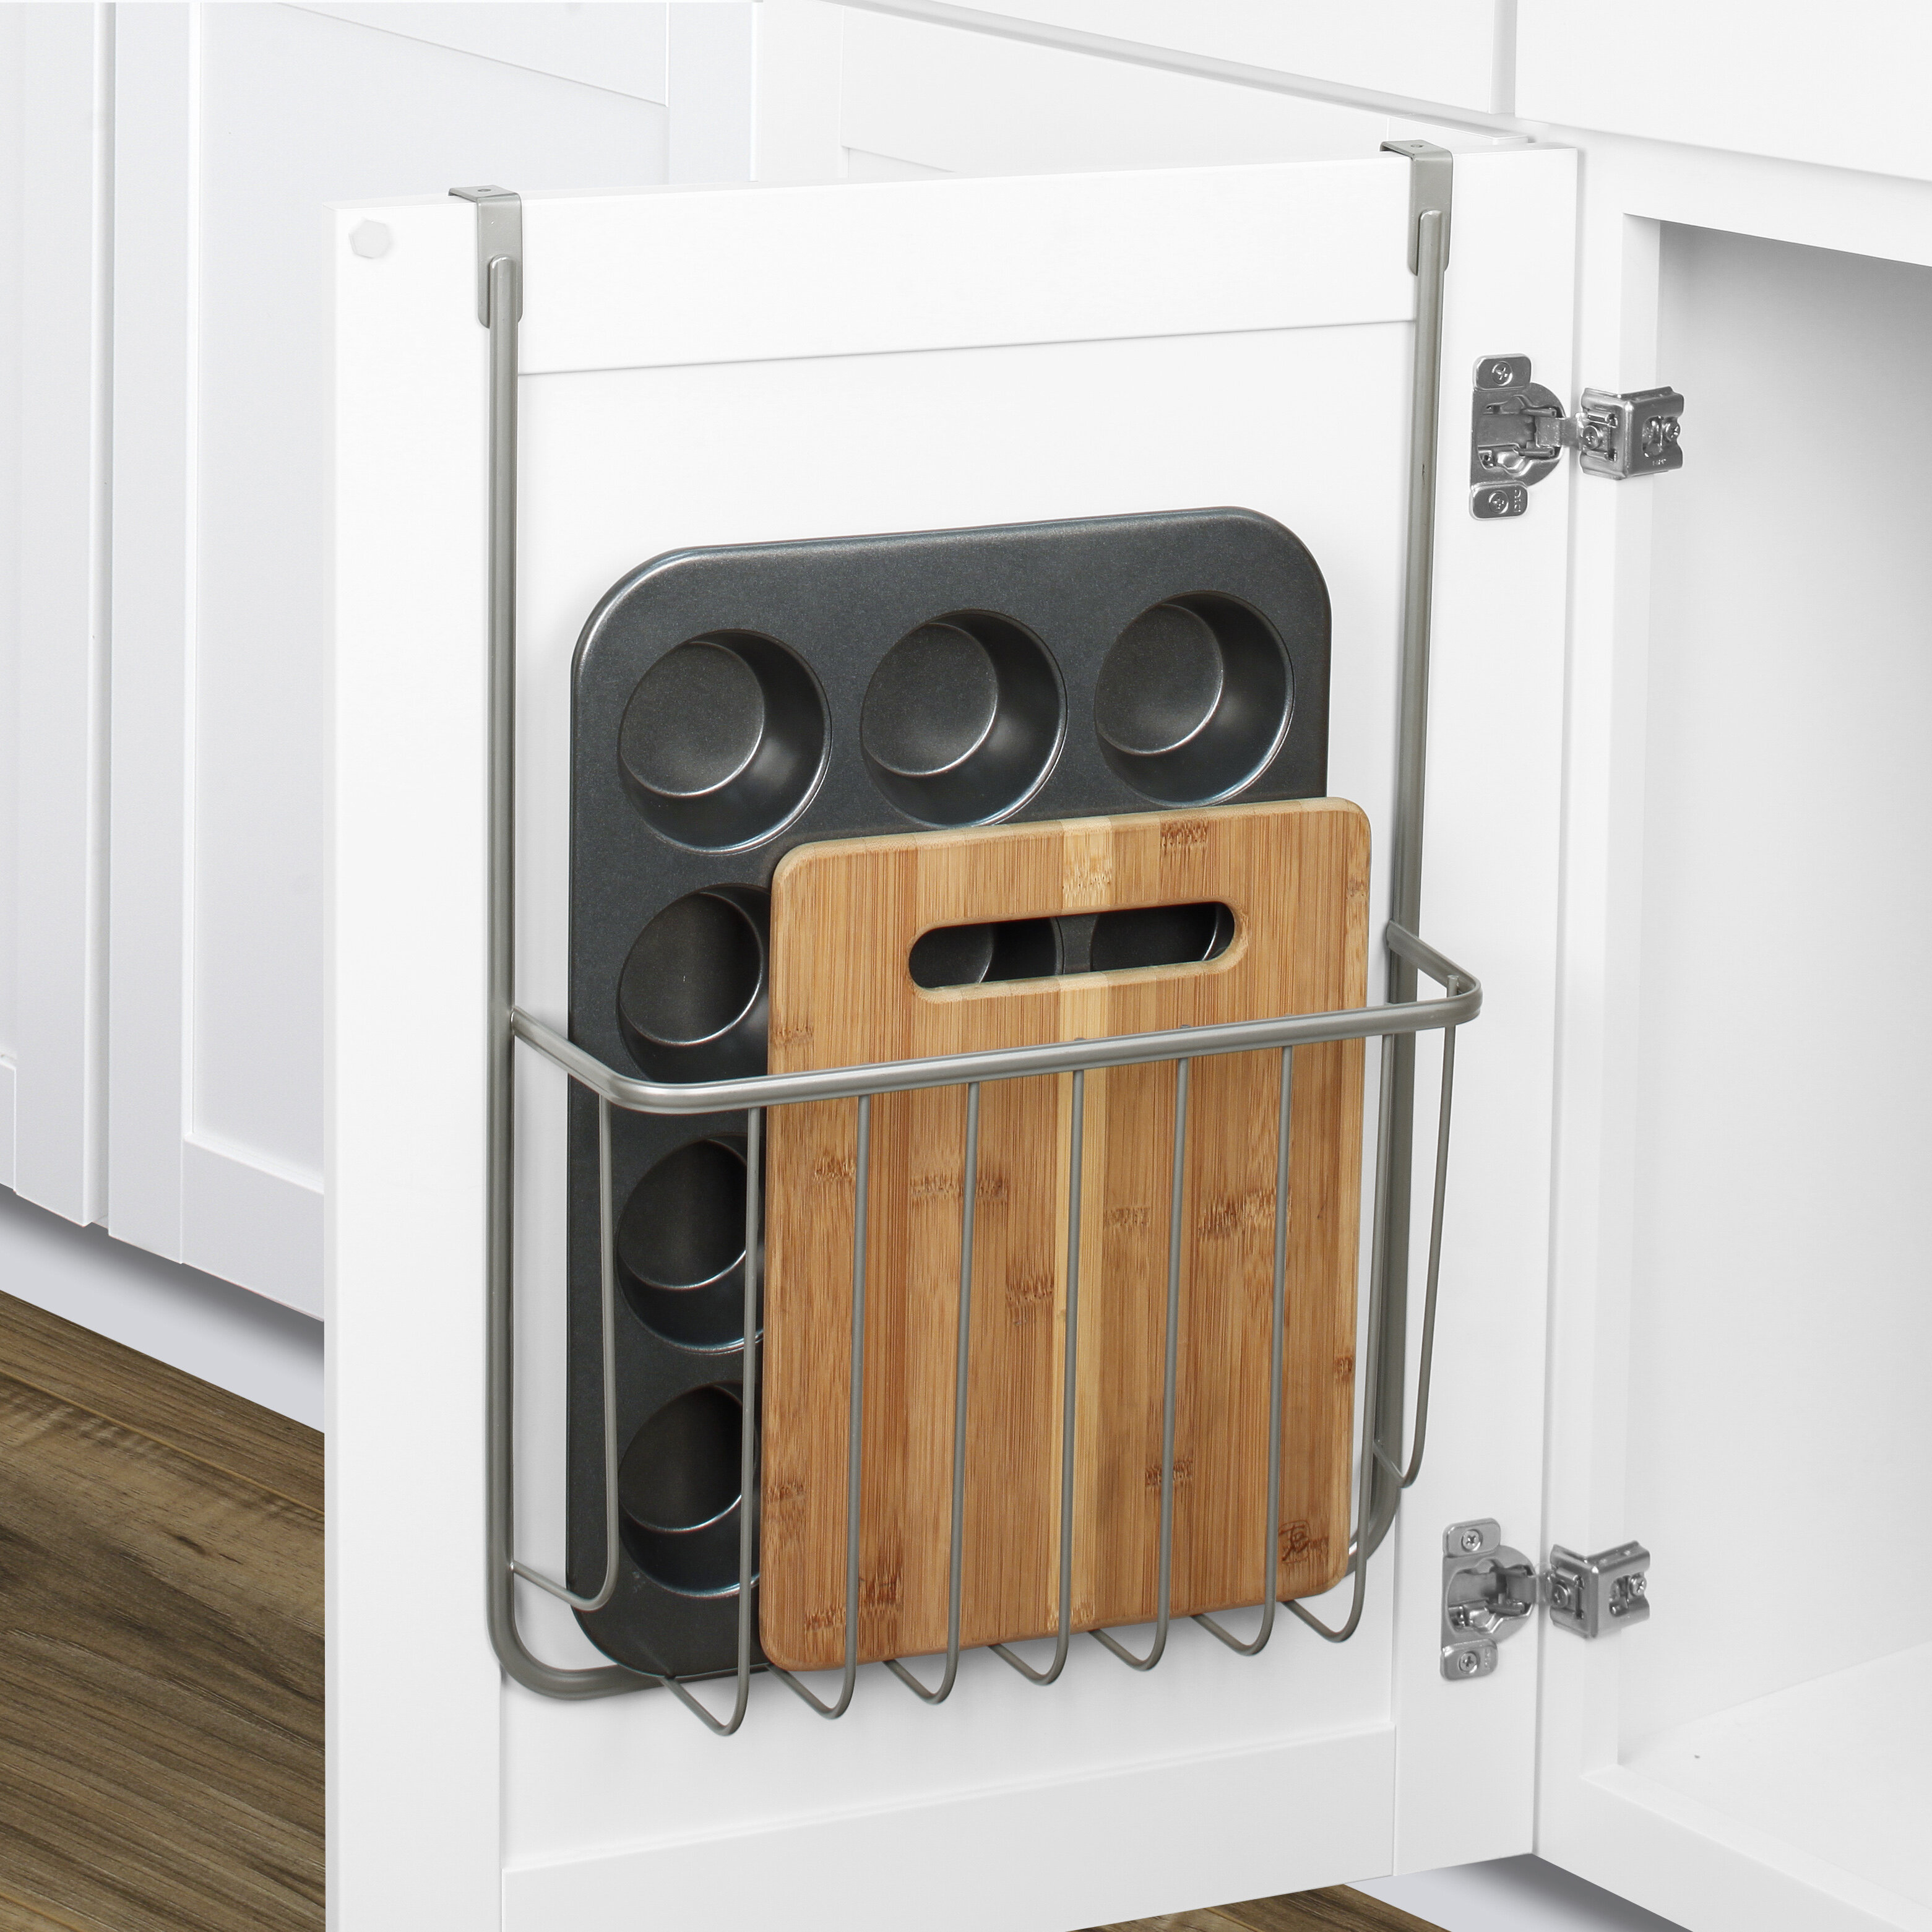 Charmant Over The Cabinet Cutting Board And Bakeware Holder Cabinet Door Organizer